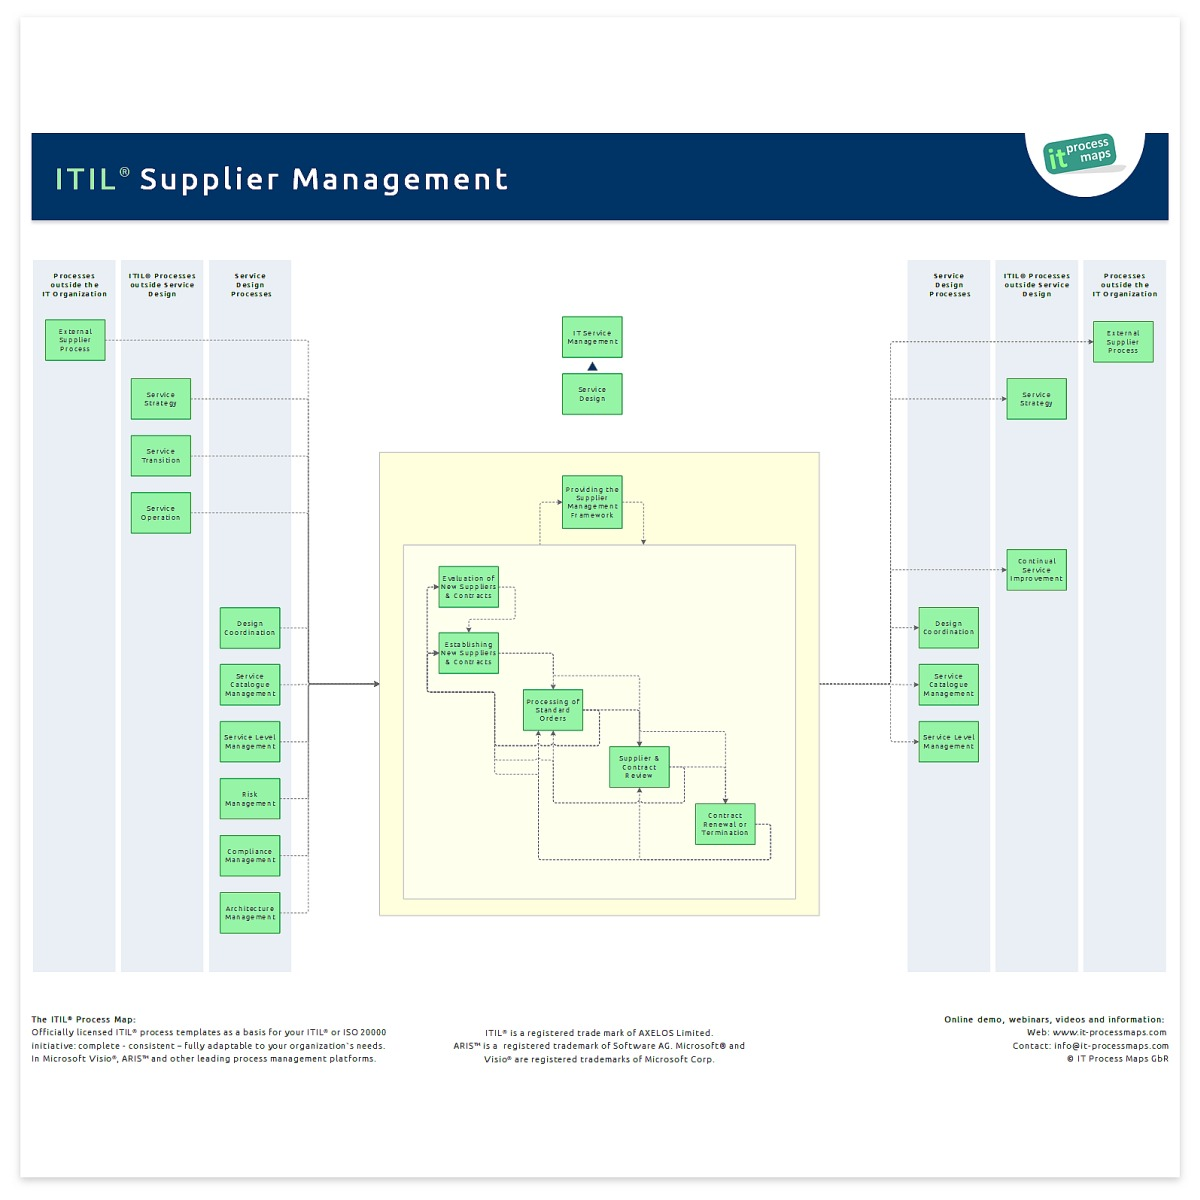 Itil-supplier-management.jpg